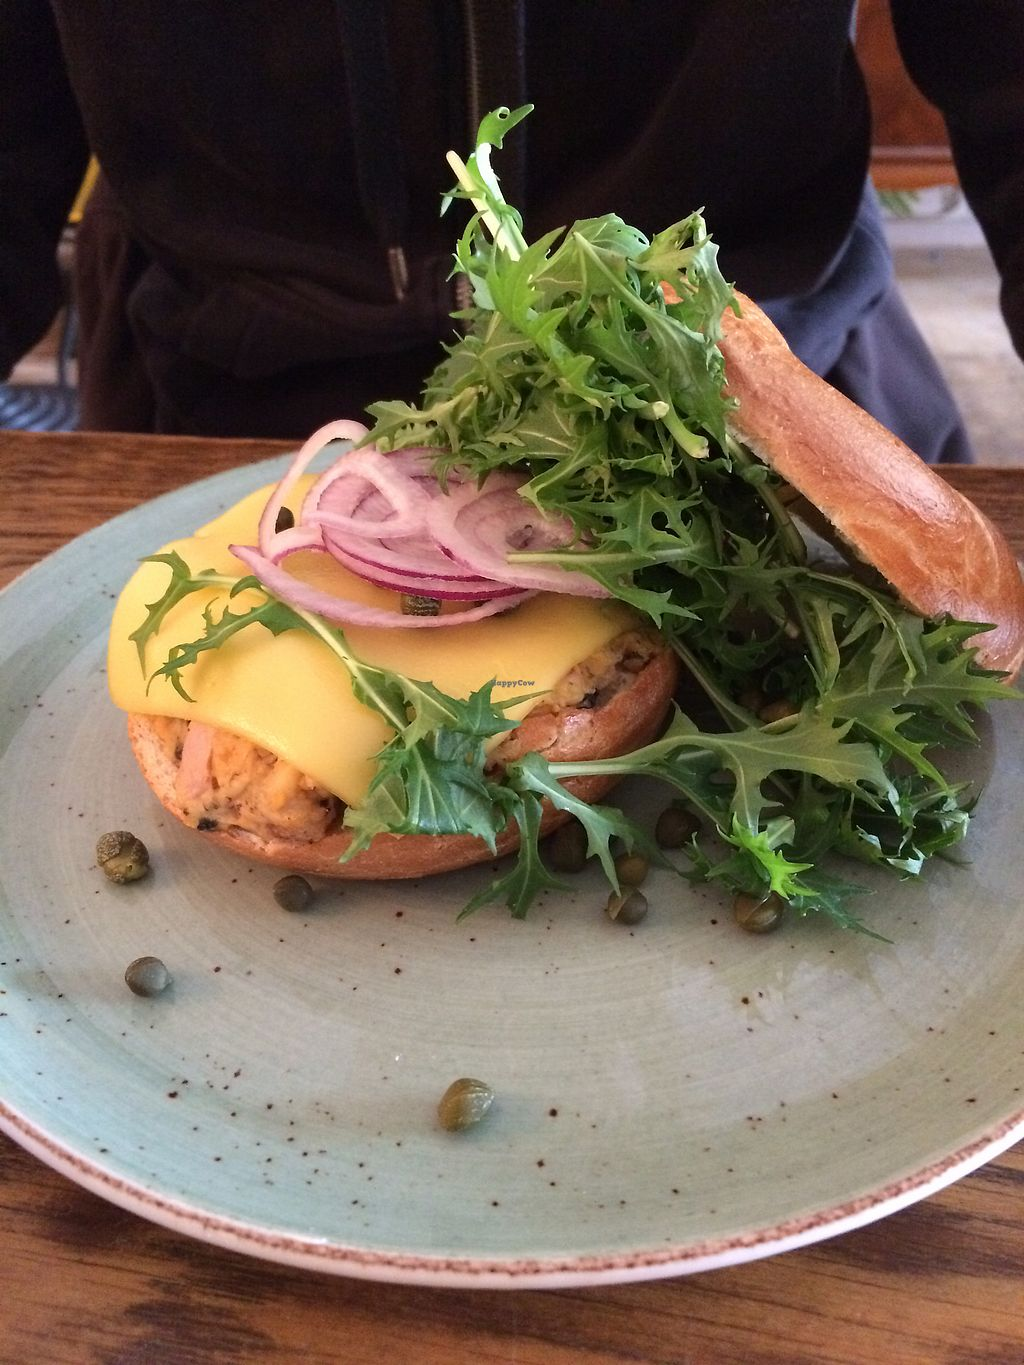 "Photo of DopHert  by <a href=""/members/profile/ValVeg"">ValVeg</a> <br/>No-tuna bagel with cheese <br/> March 3, 2018  - <a href='/contact/abuse/image/37702/366300'>Report</a>"